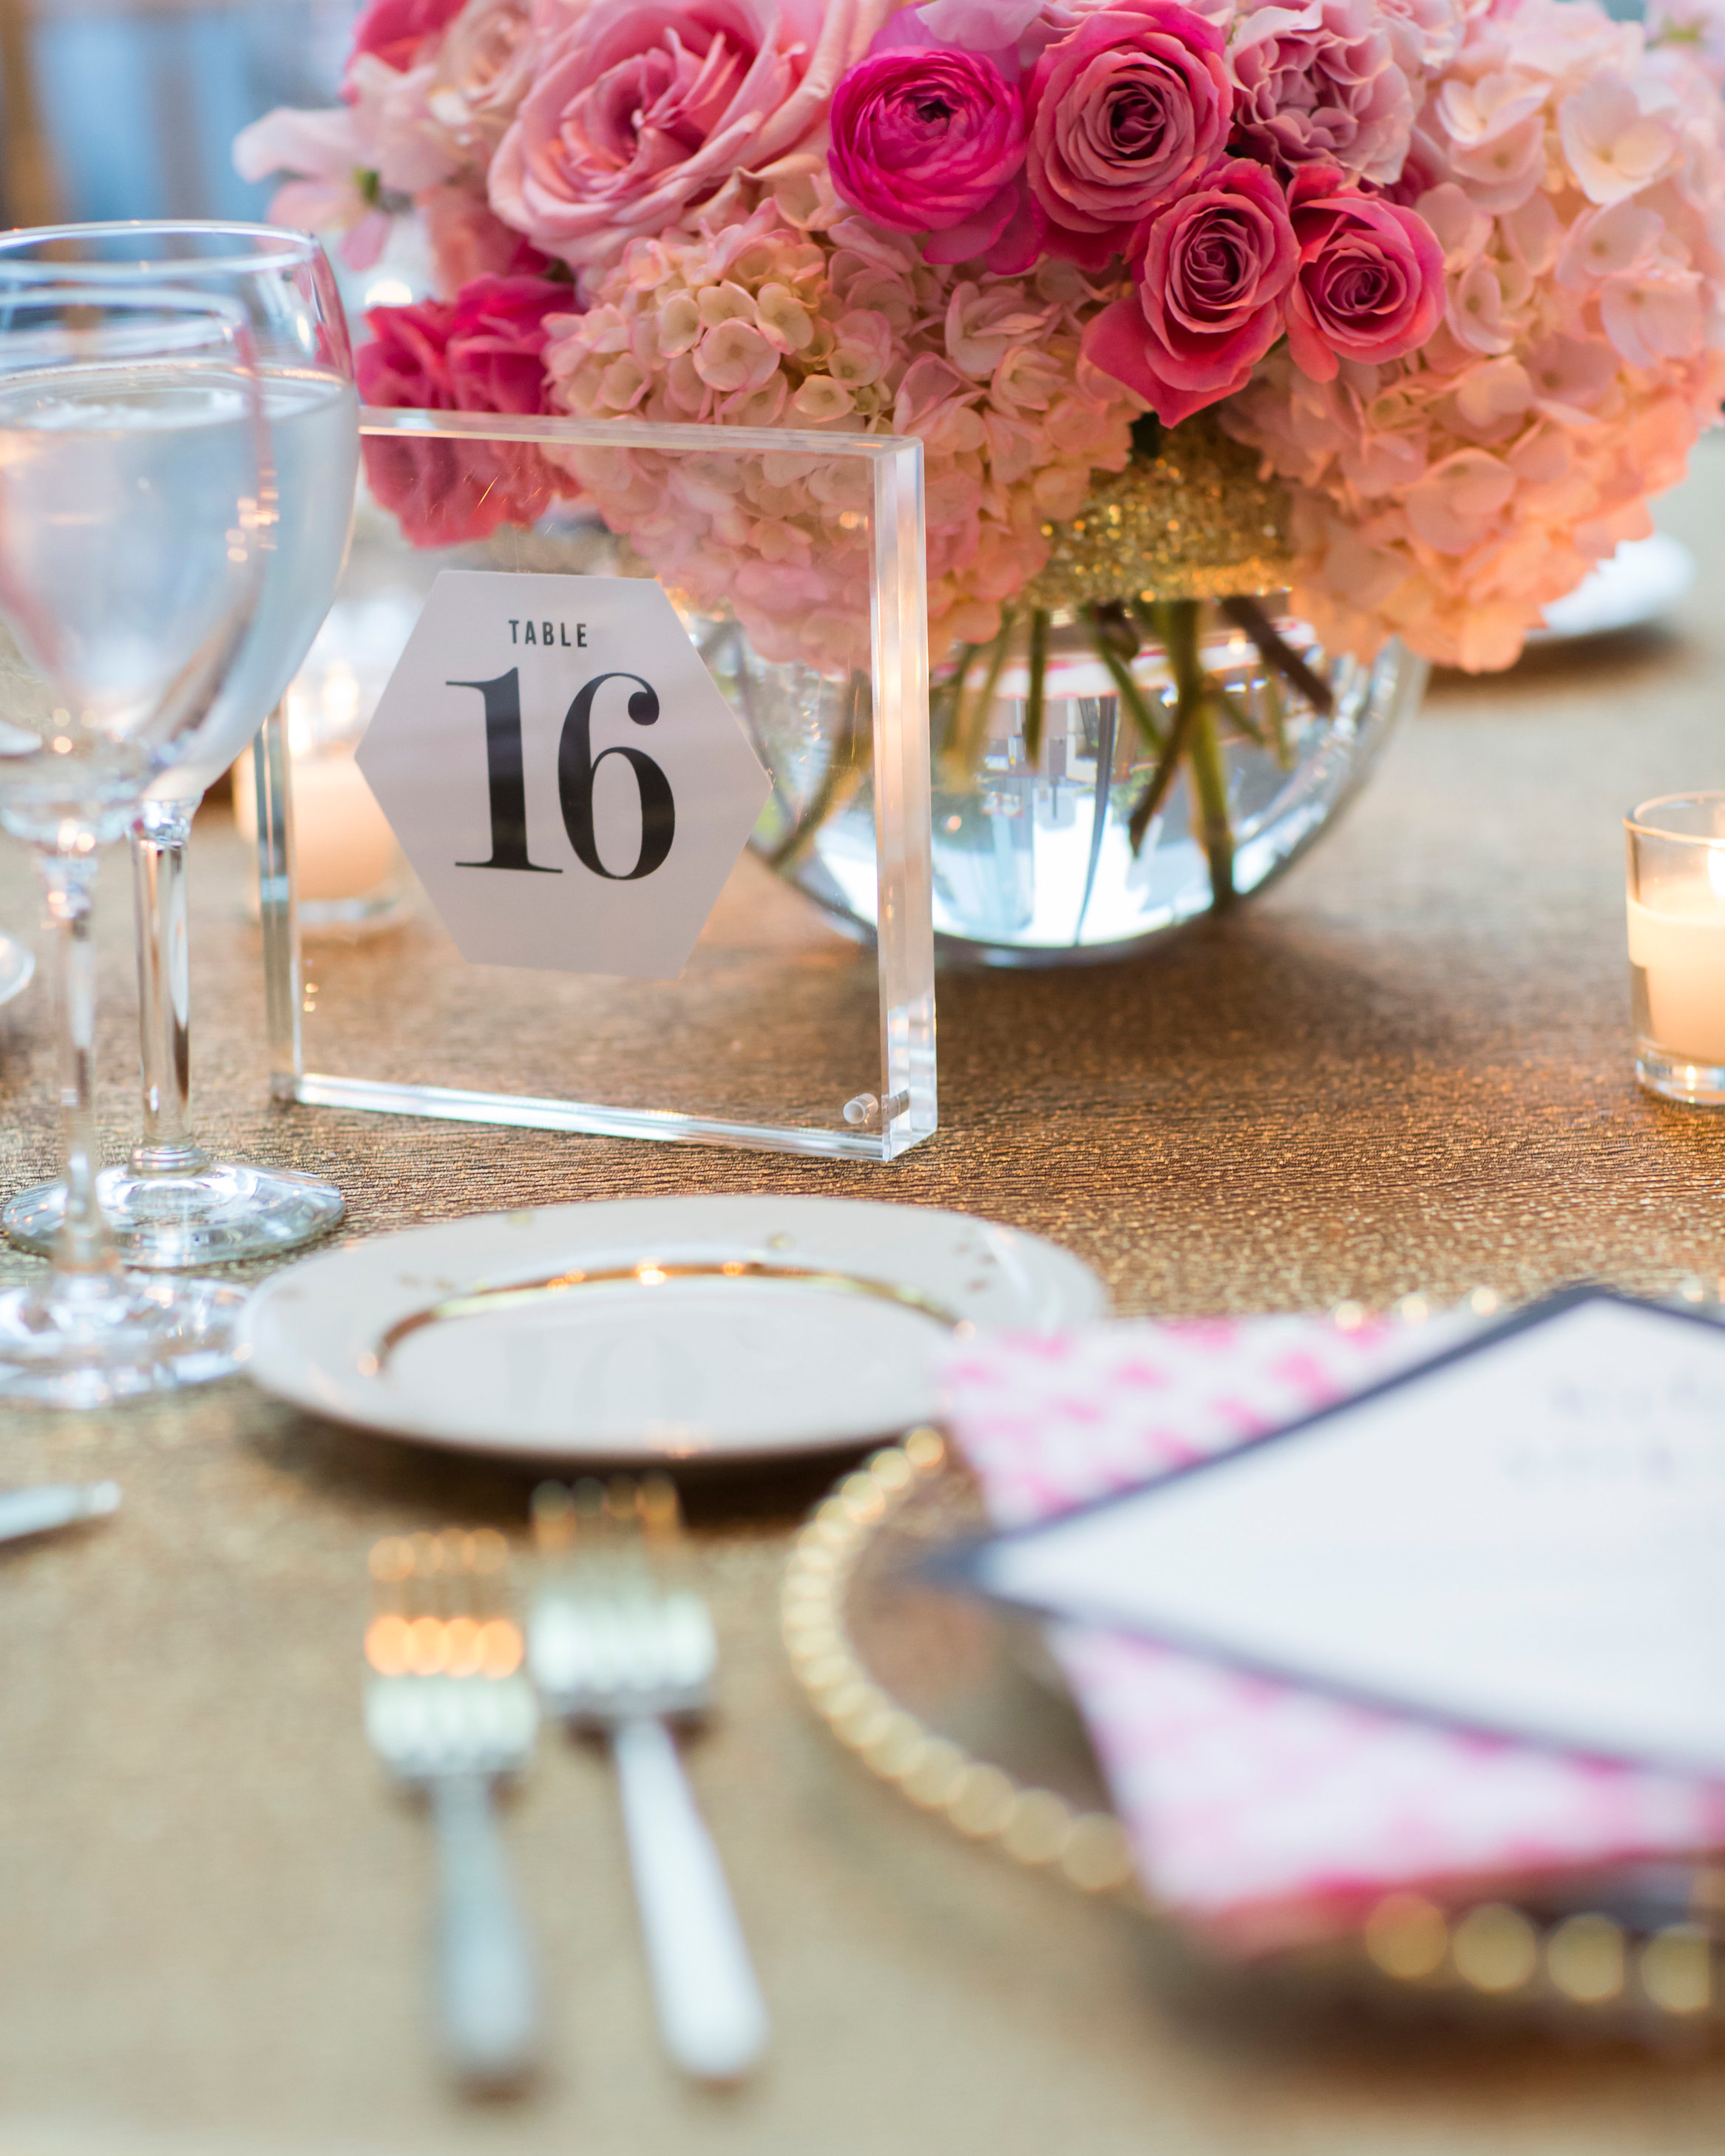 The Table Numbers